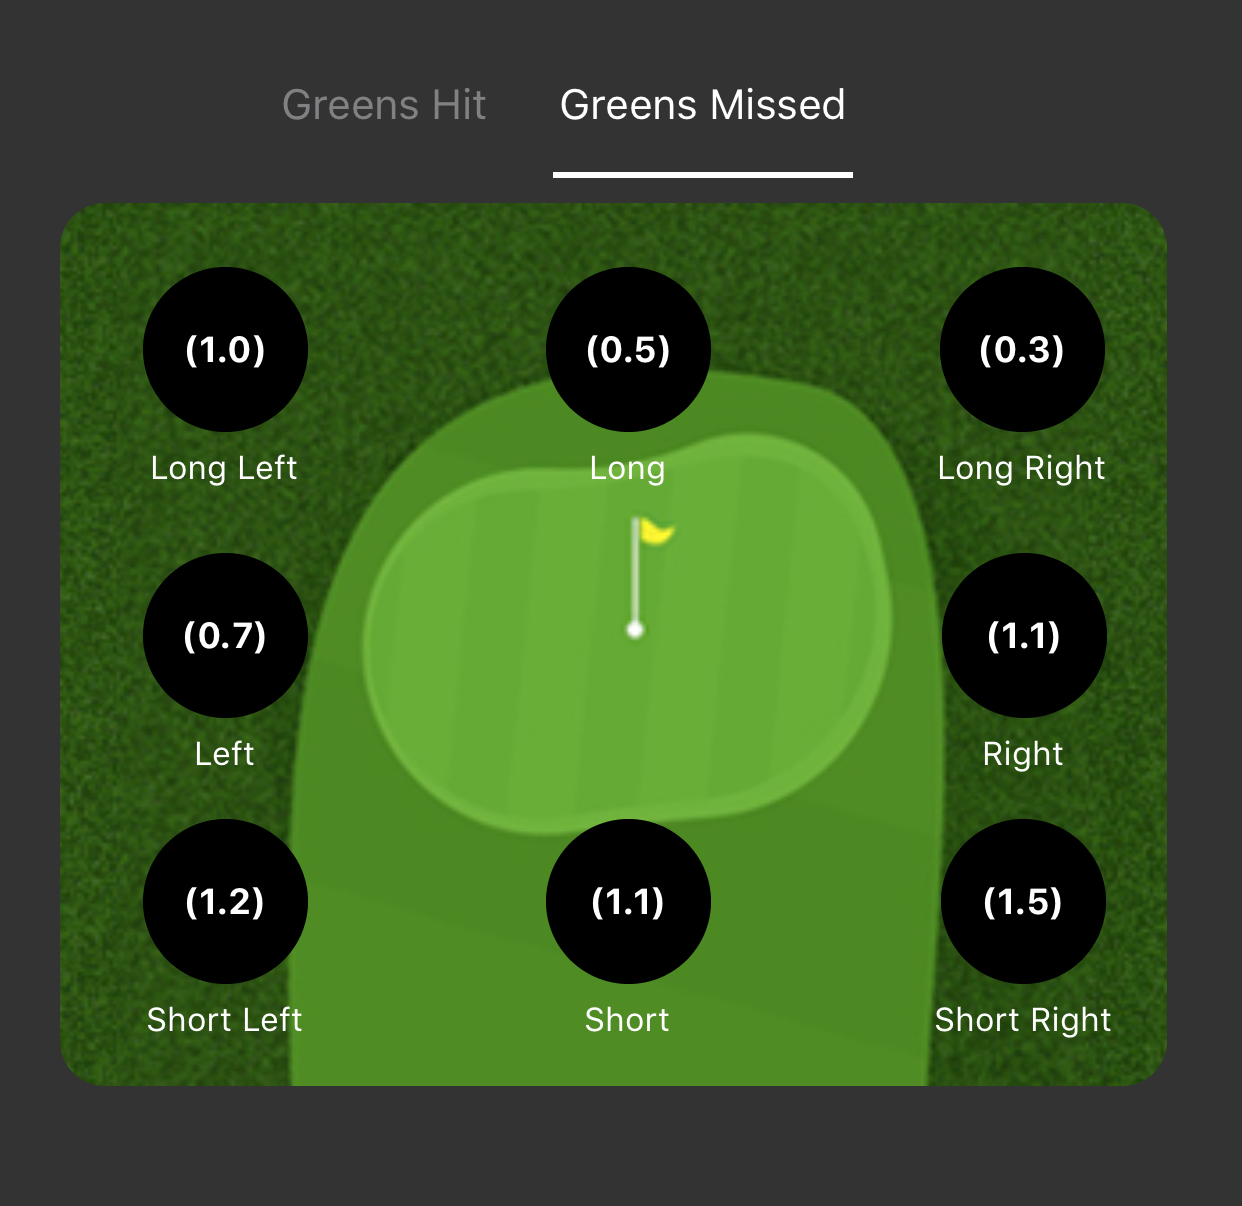 Greens missed - Approach Shots